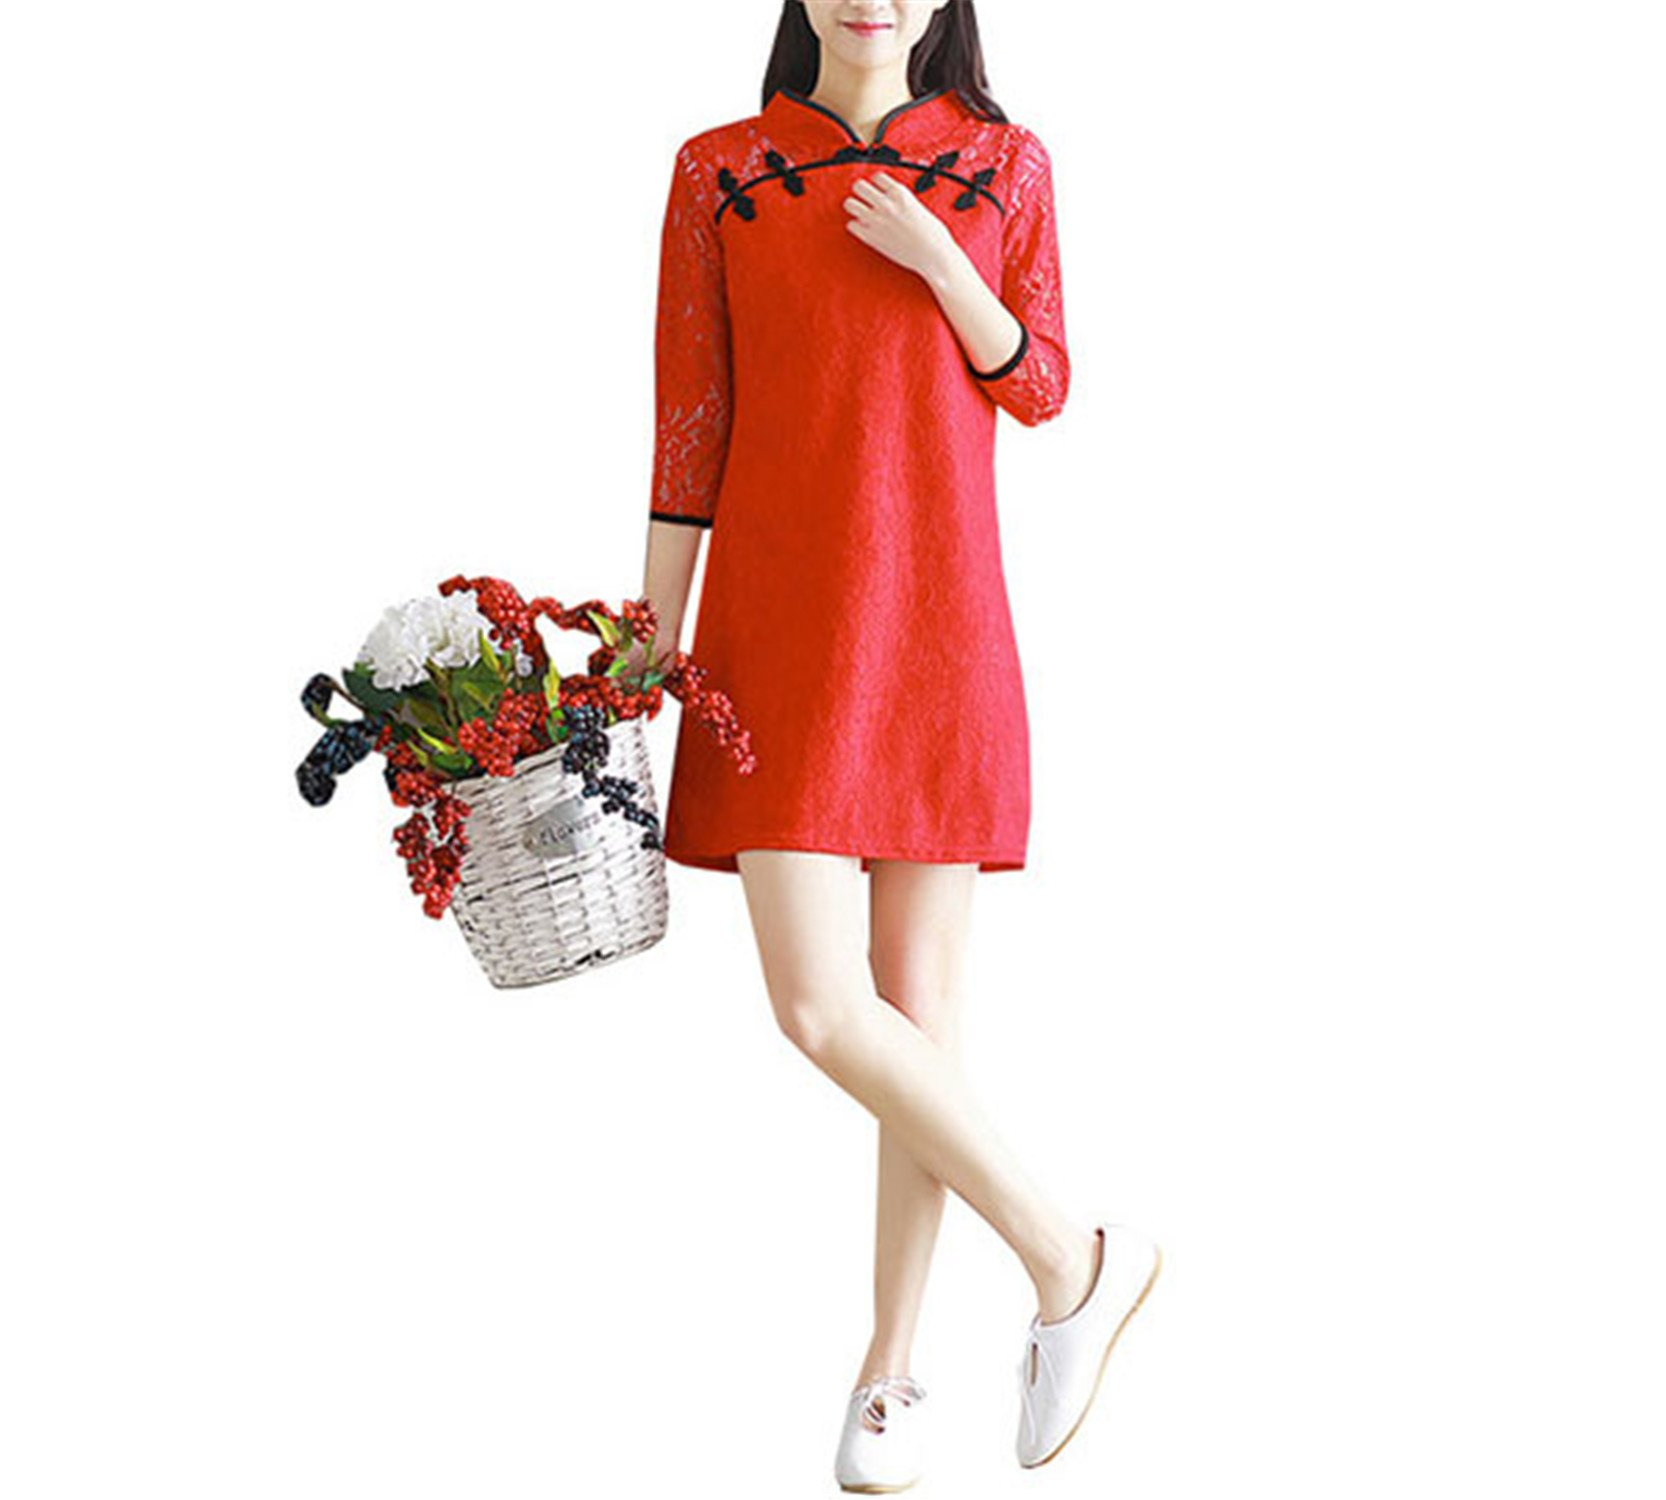 Coac3 Women Dresses Summer Vintage Ethnic Traditional Chinese Improved Cheongsam Qipao Elegant Lace Dress Red L